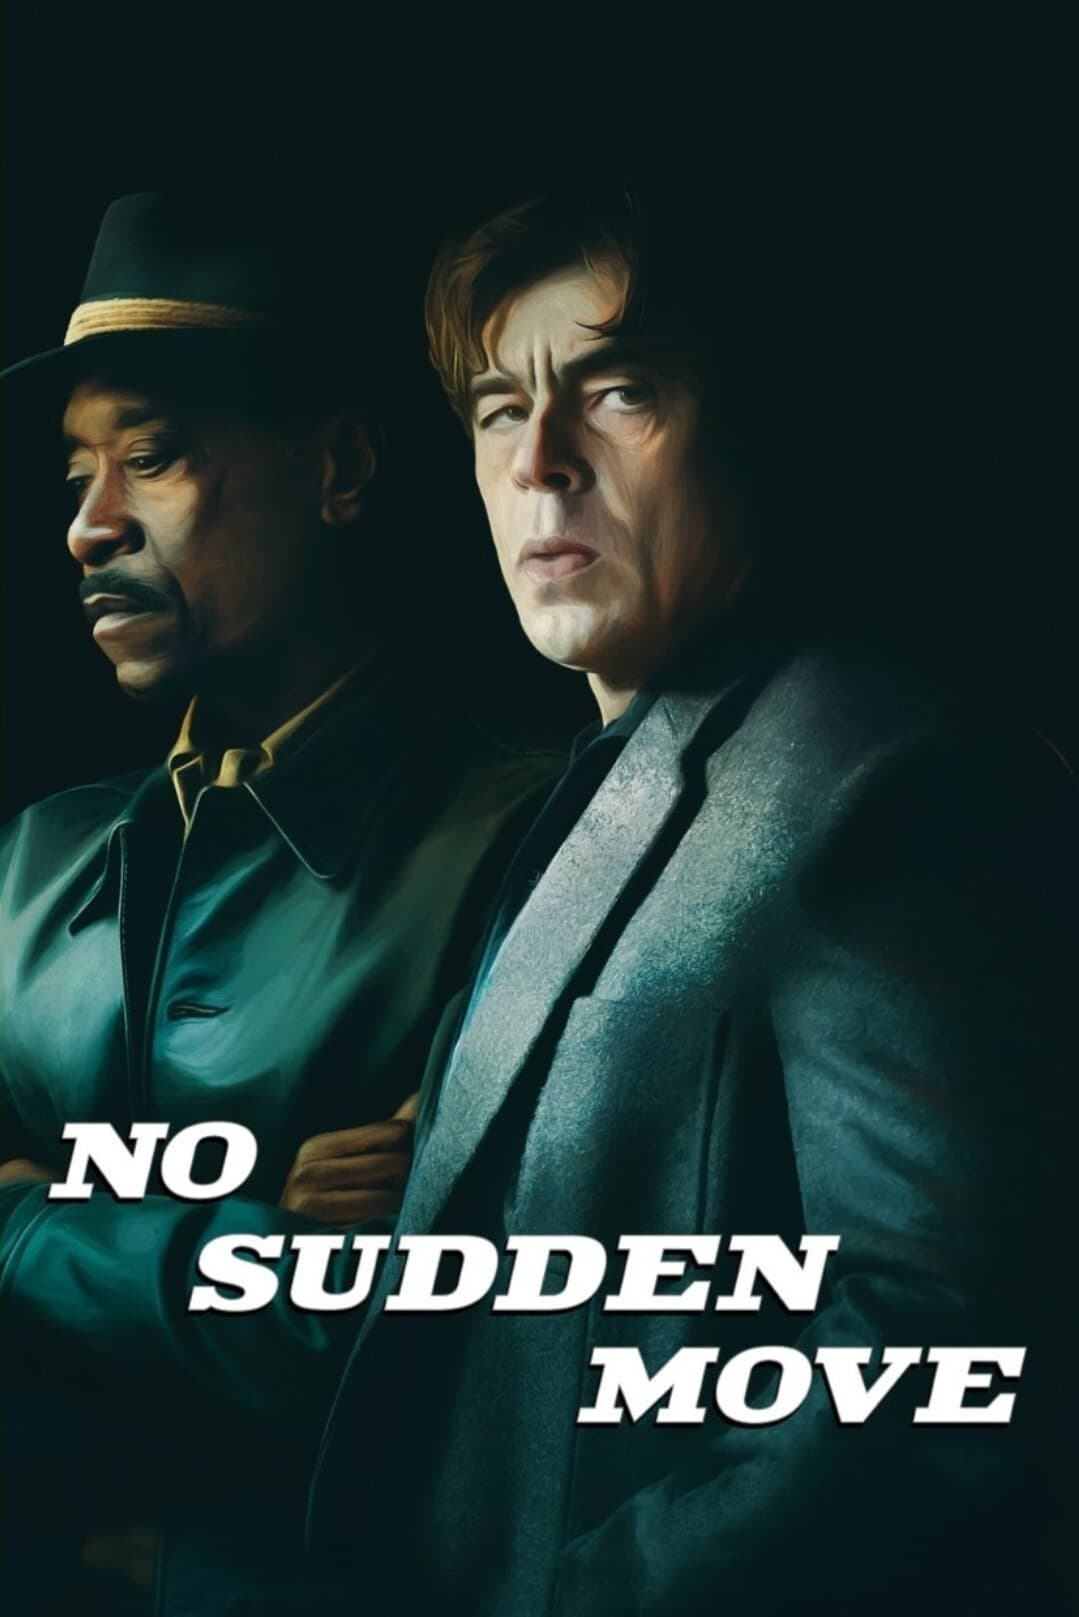 No Sudden Move - CINEMABLEND